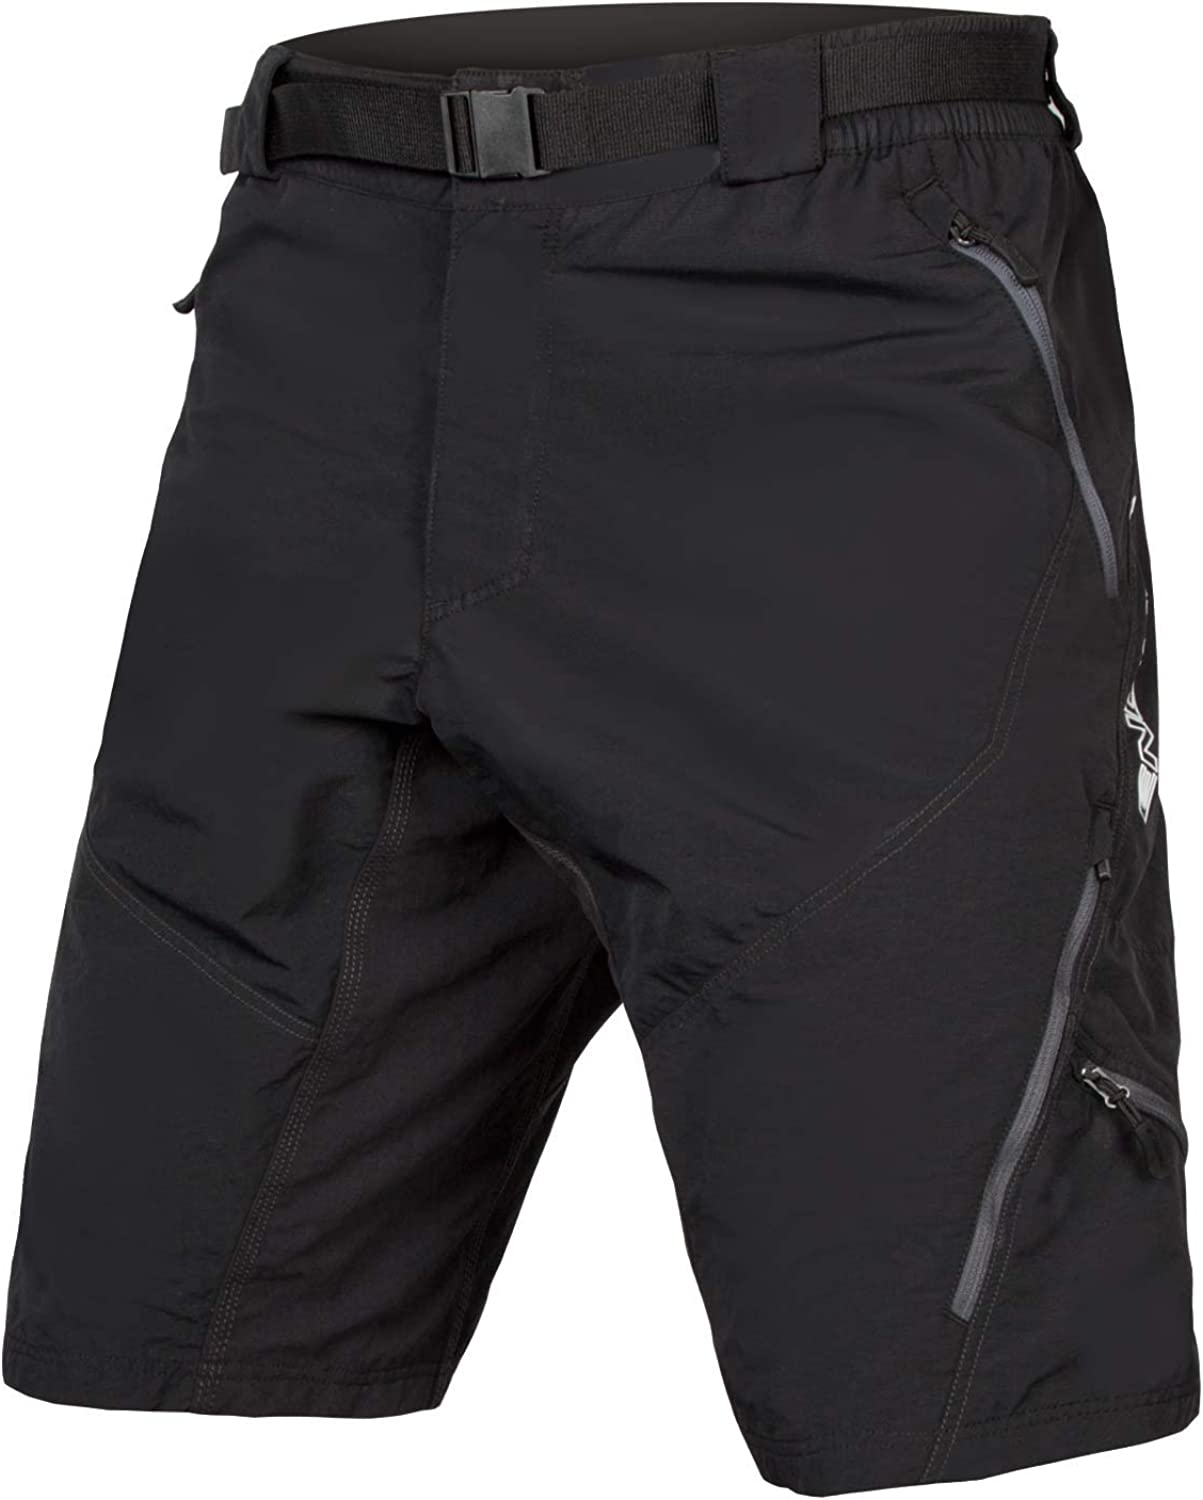 Endura Hummvee Genuine Limited price sale Mountain Bike Baggy with Short Liner Cycling II